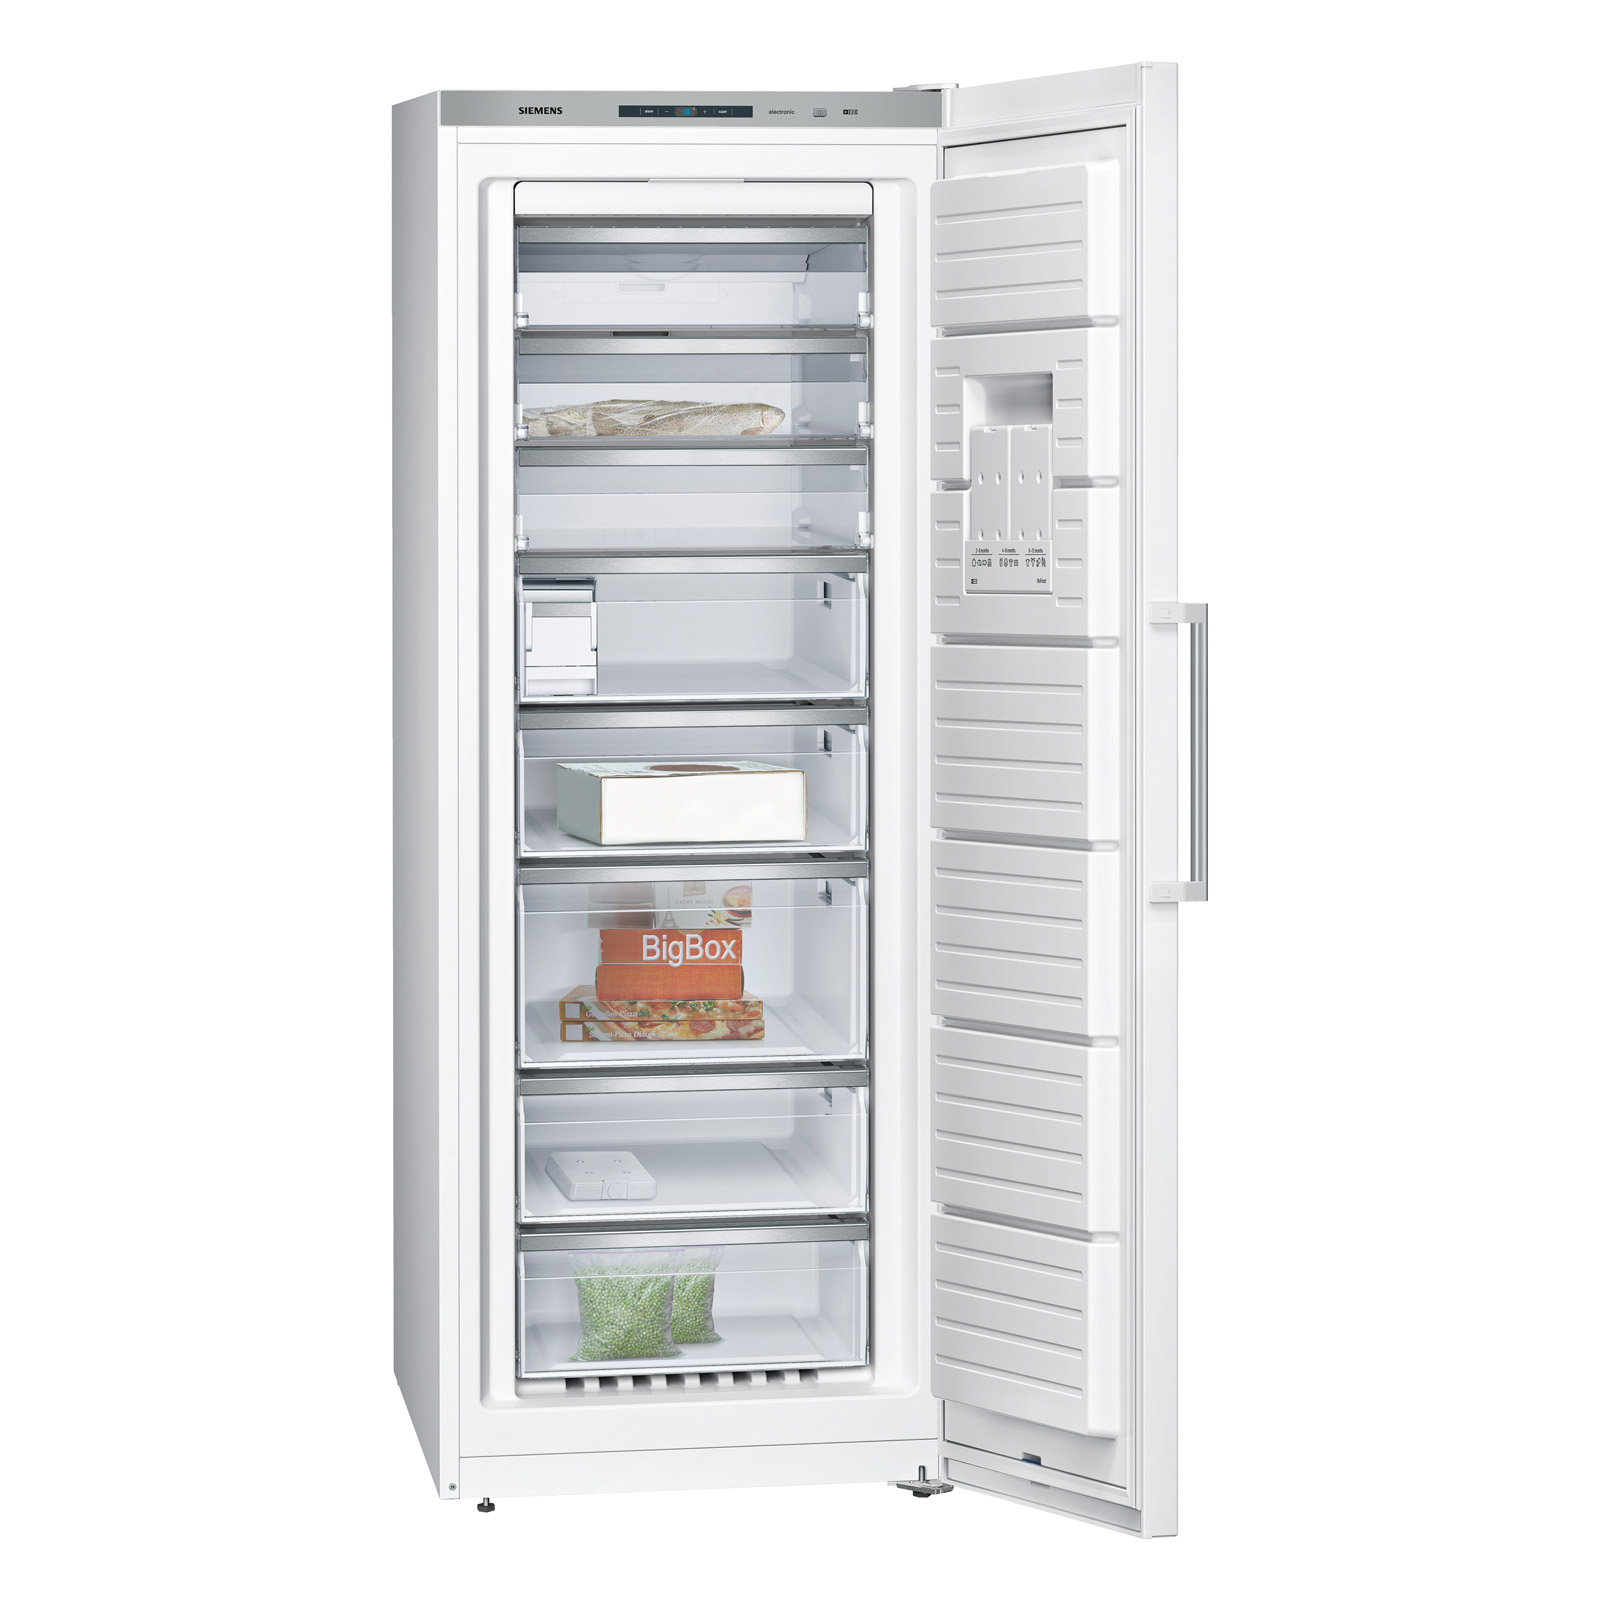 siemens gs58naw41 nofrost upright freezer in white. Black Bedroom Furniture Sets. Home Design Ideas